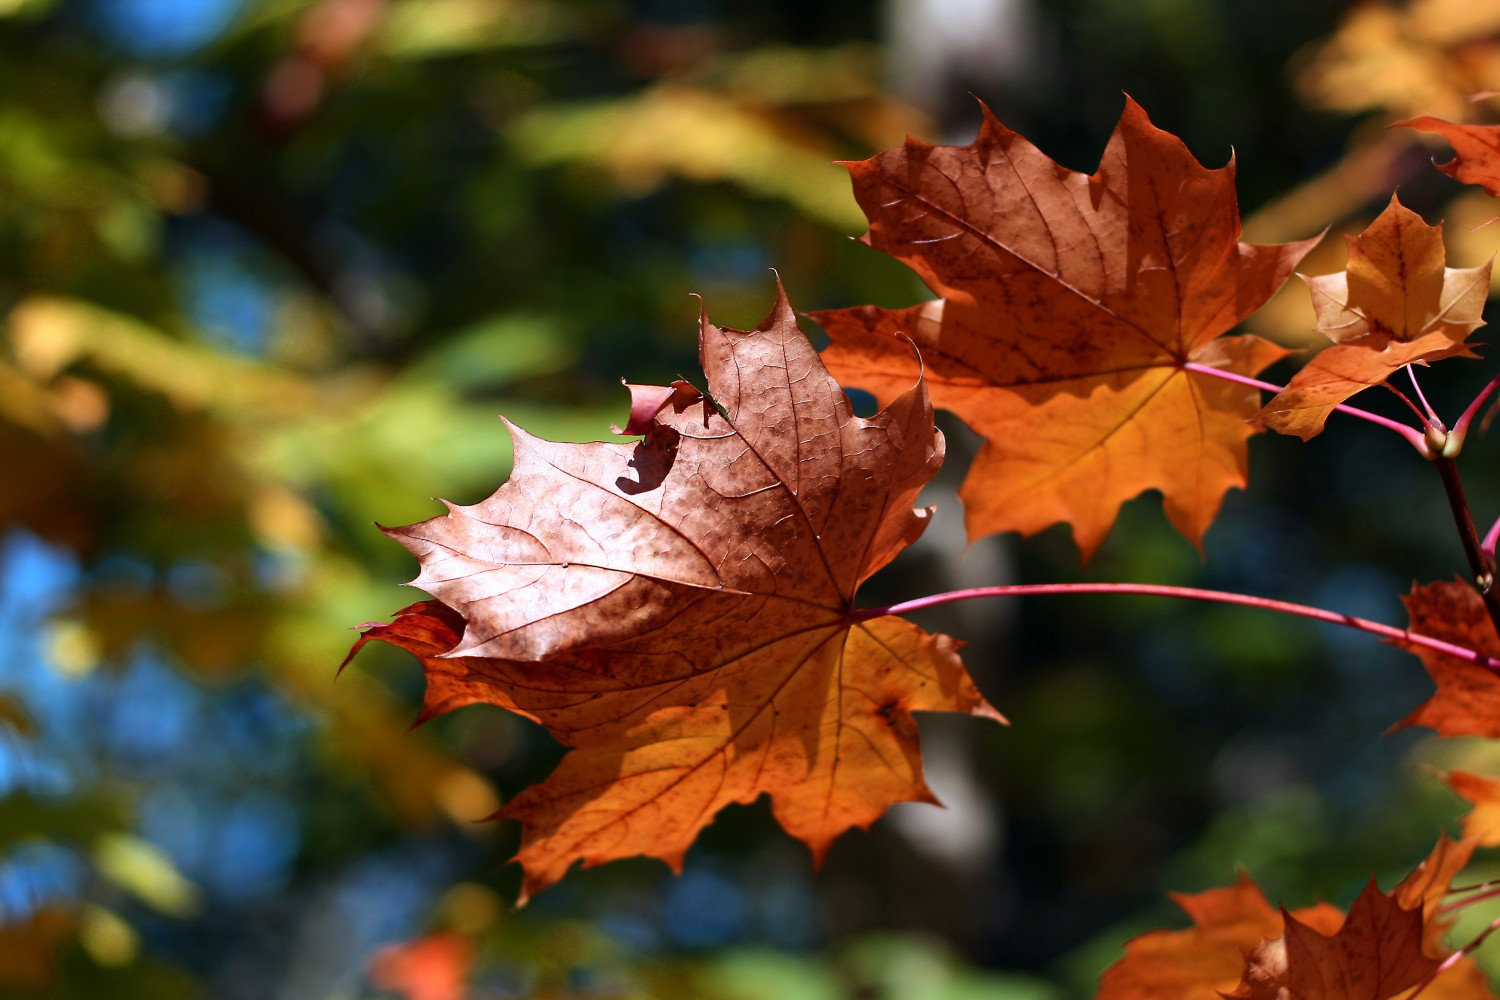 FallLeaves Fall Favorites: Updating Your Home Decor with Autumn Staples